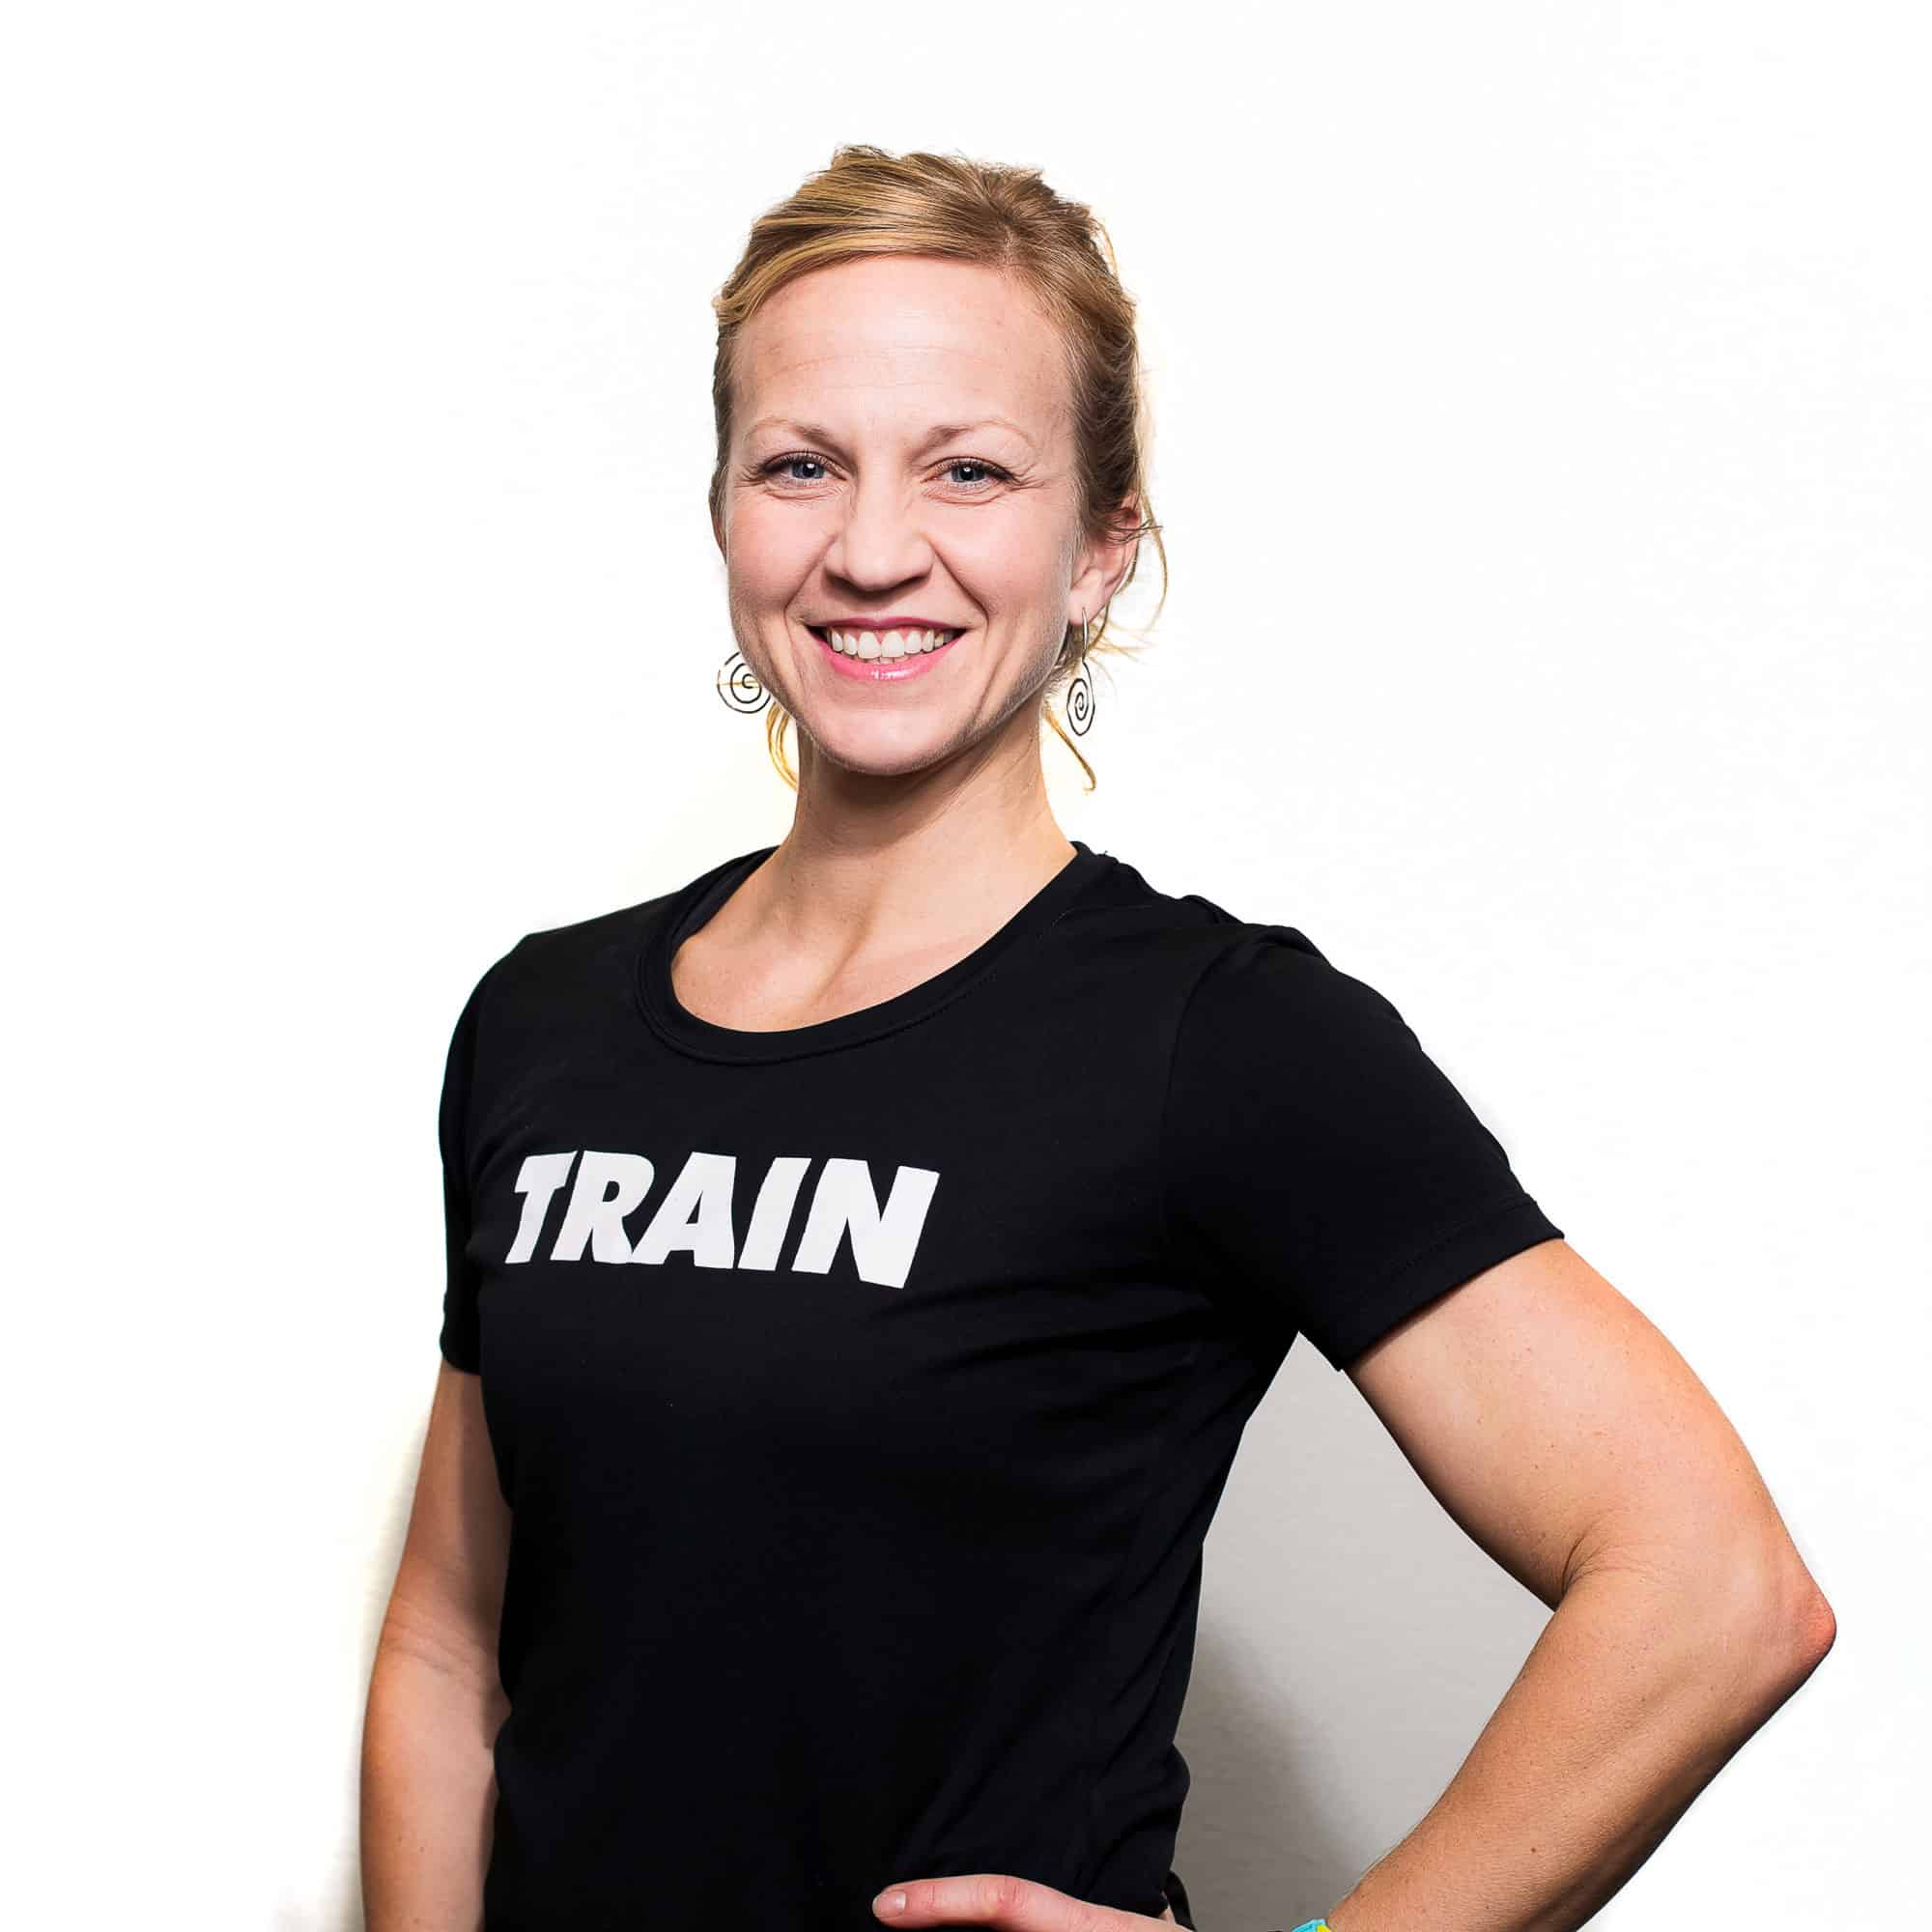 Kari Hall : Personal Trainer - ACSM, HFS, USAT & Level 1 Triathlon Coach